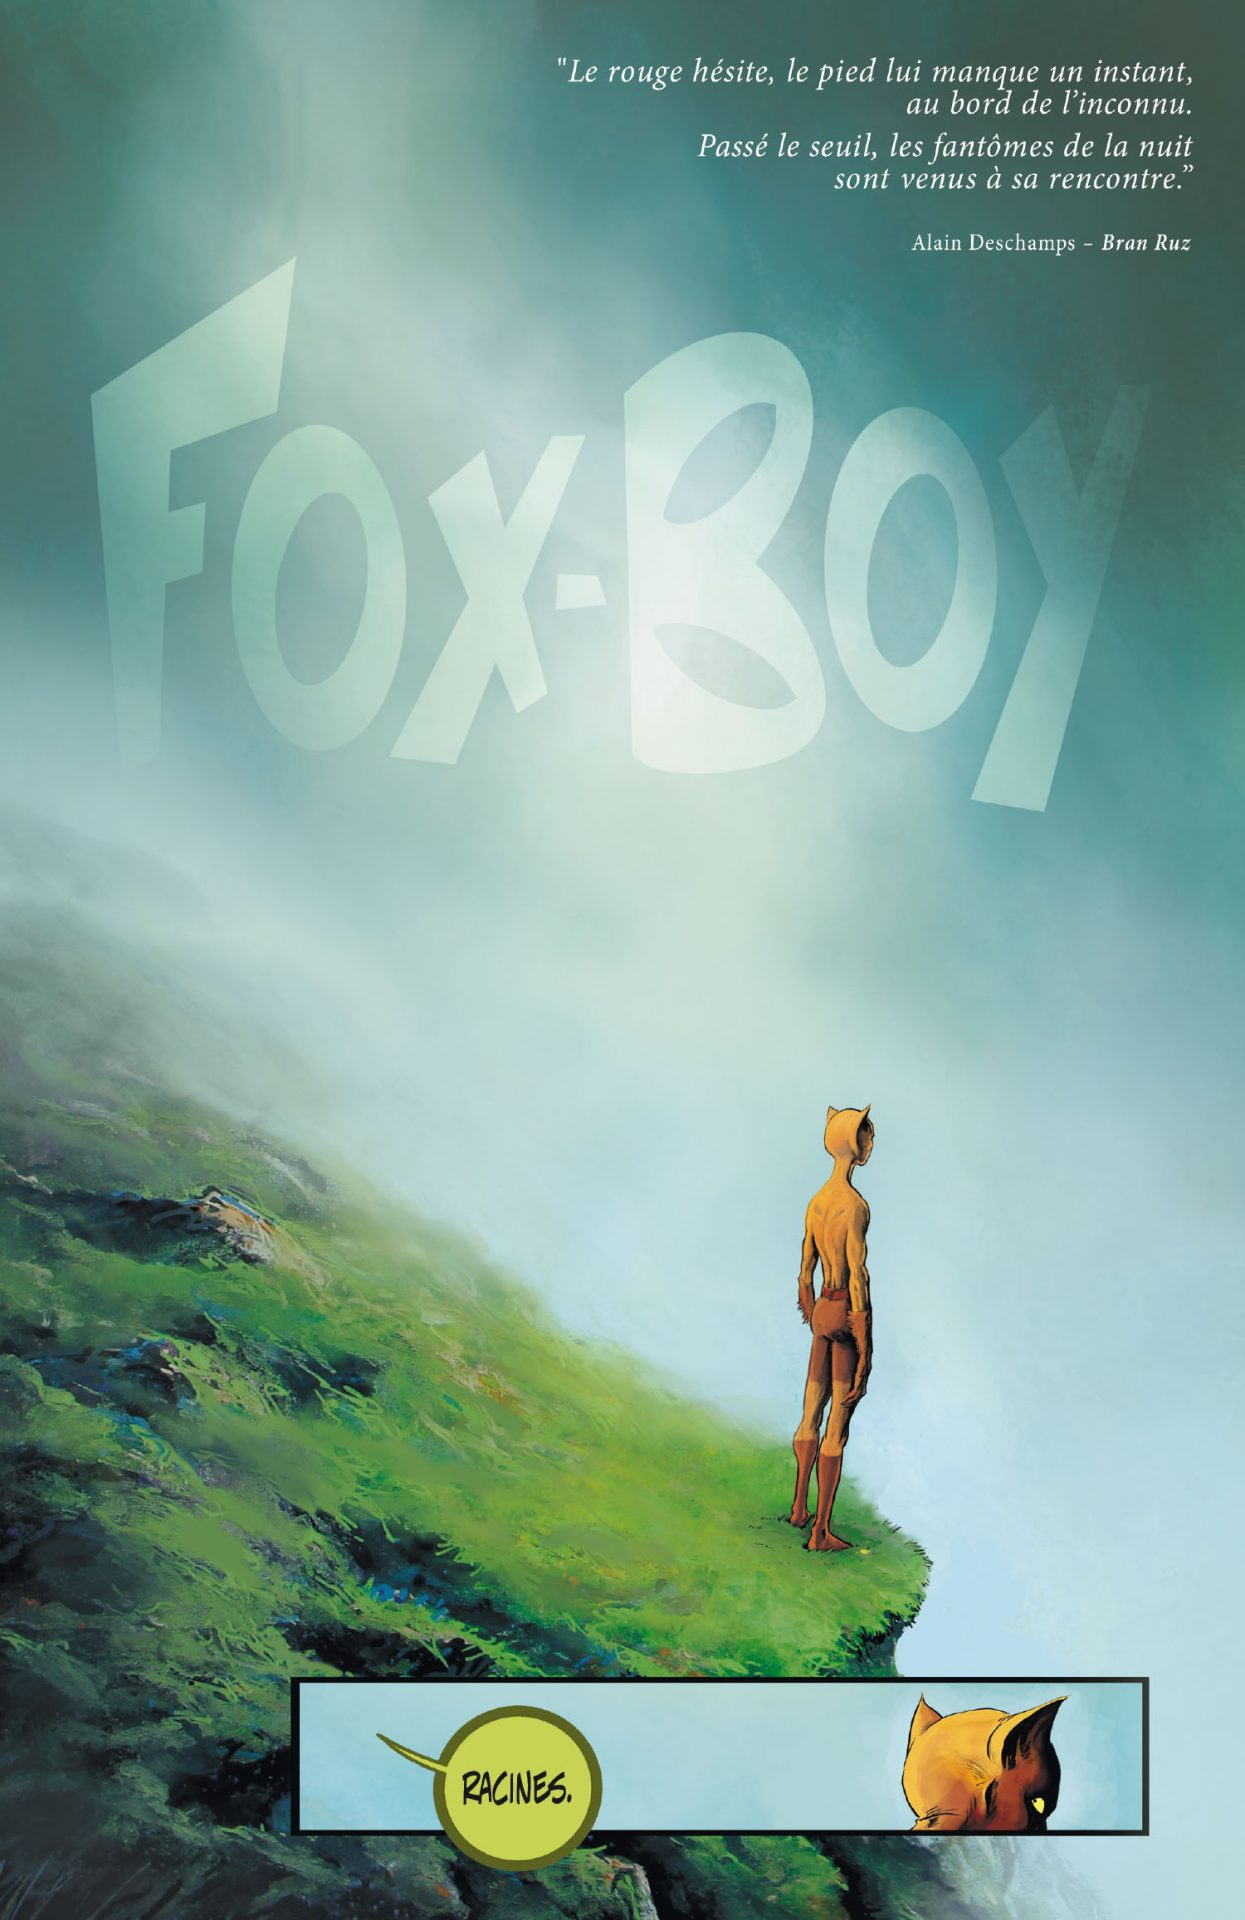 Fox_Boy_2_INT.indd